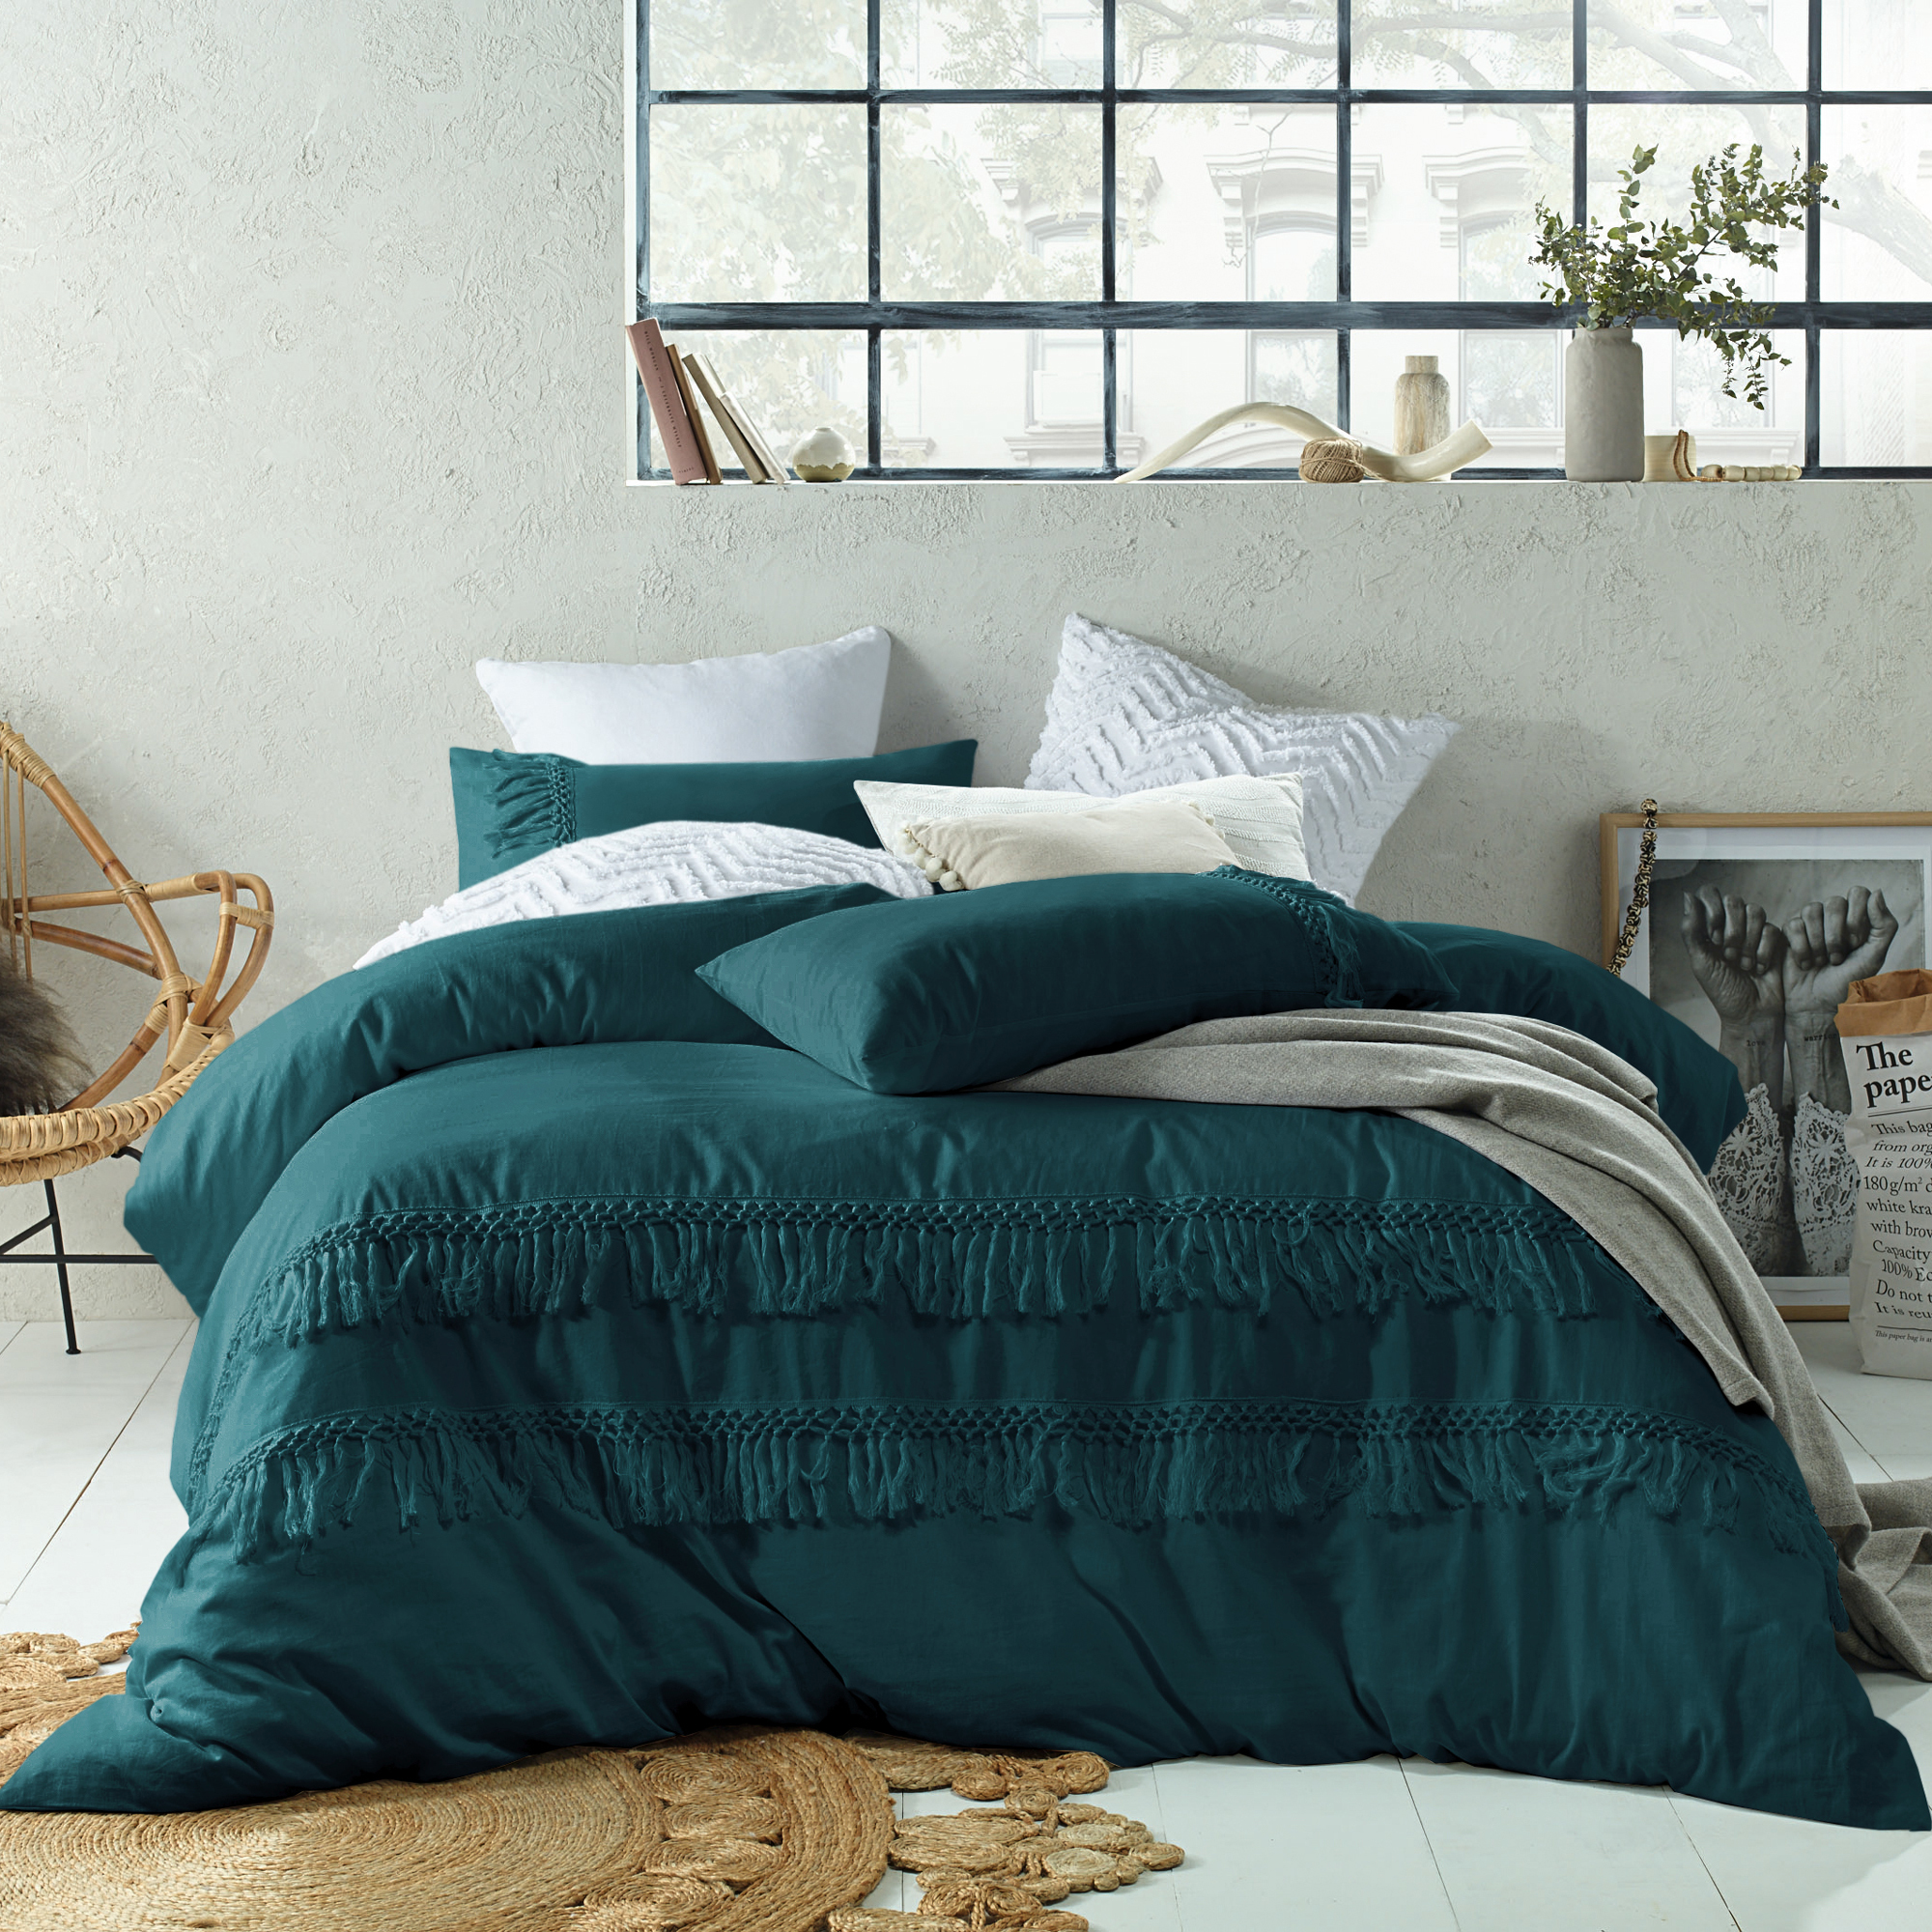 Boho Quilt Covers Australia Details About New Jade Boho Tassel Linen Cotton Quilt Cover Set Accessorize Quilt Covers